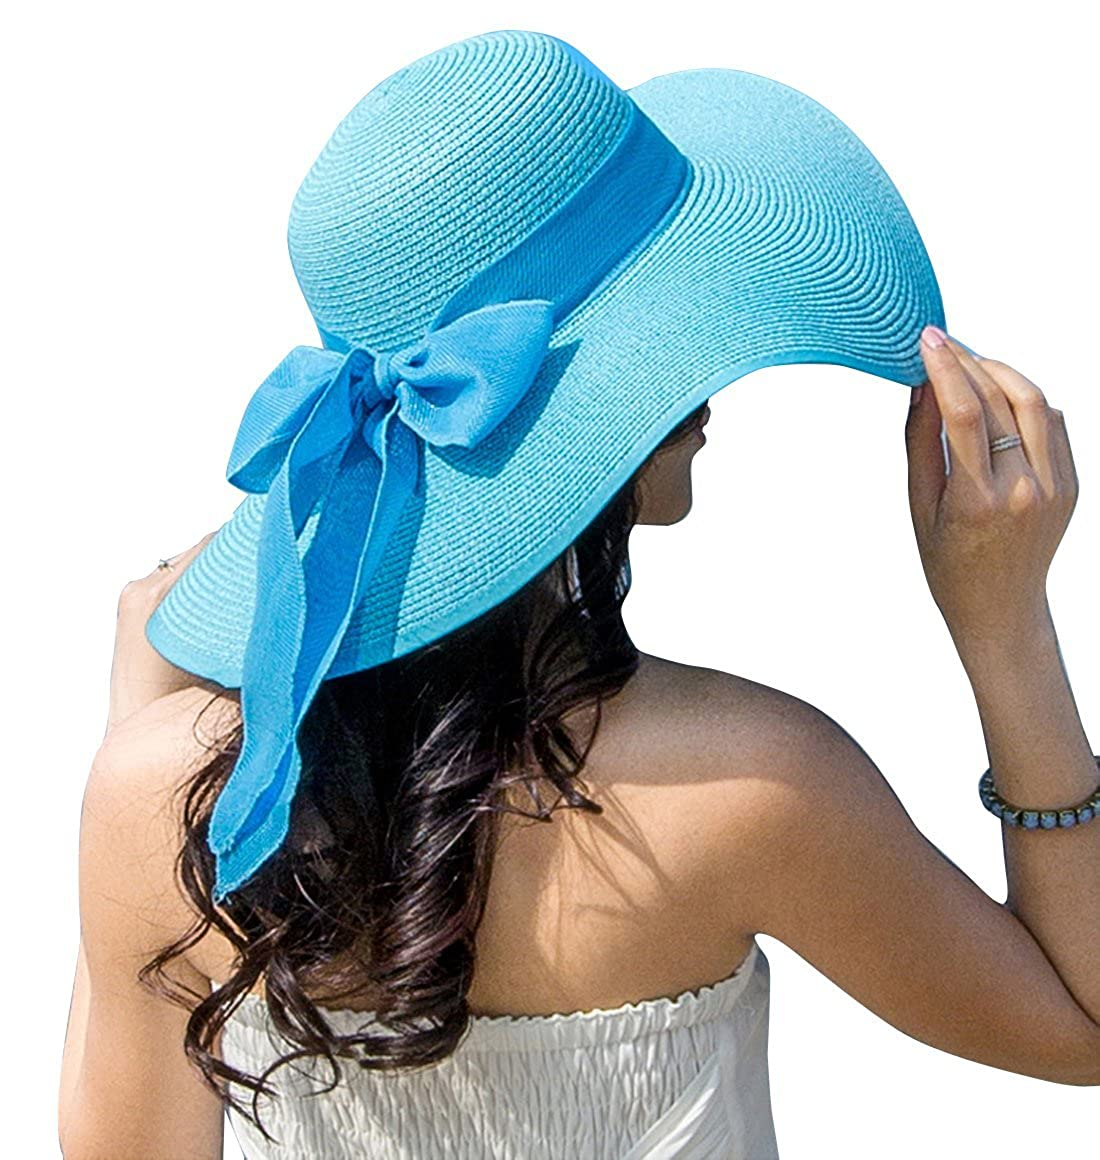 a36f5c752a0 Wide Large Brim --- Those sunmmer sun hats can shield your eyes and face  from the sun